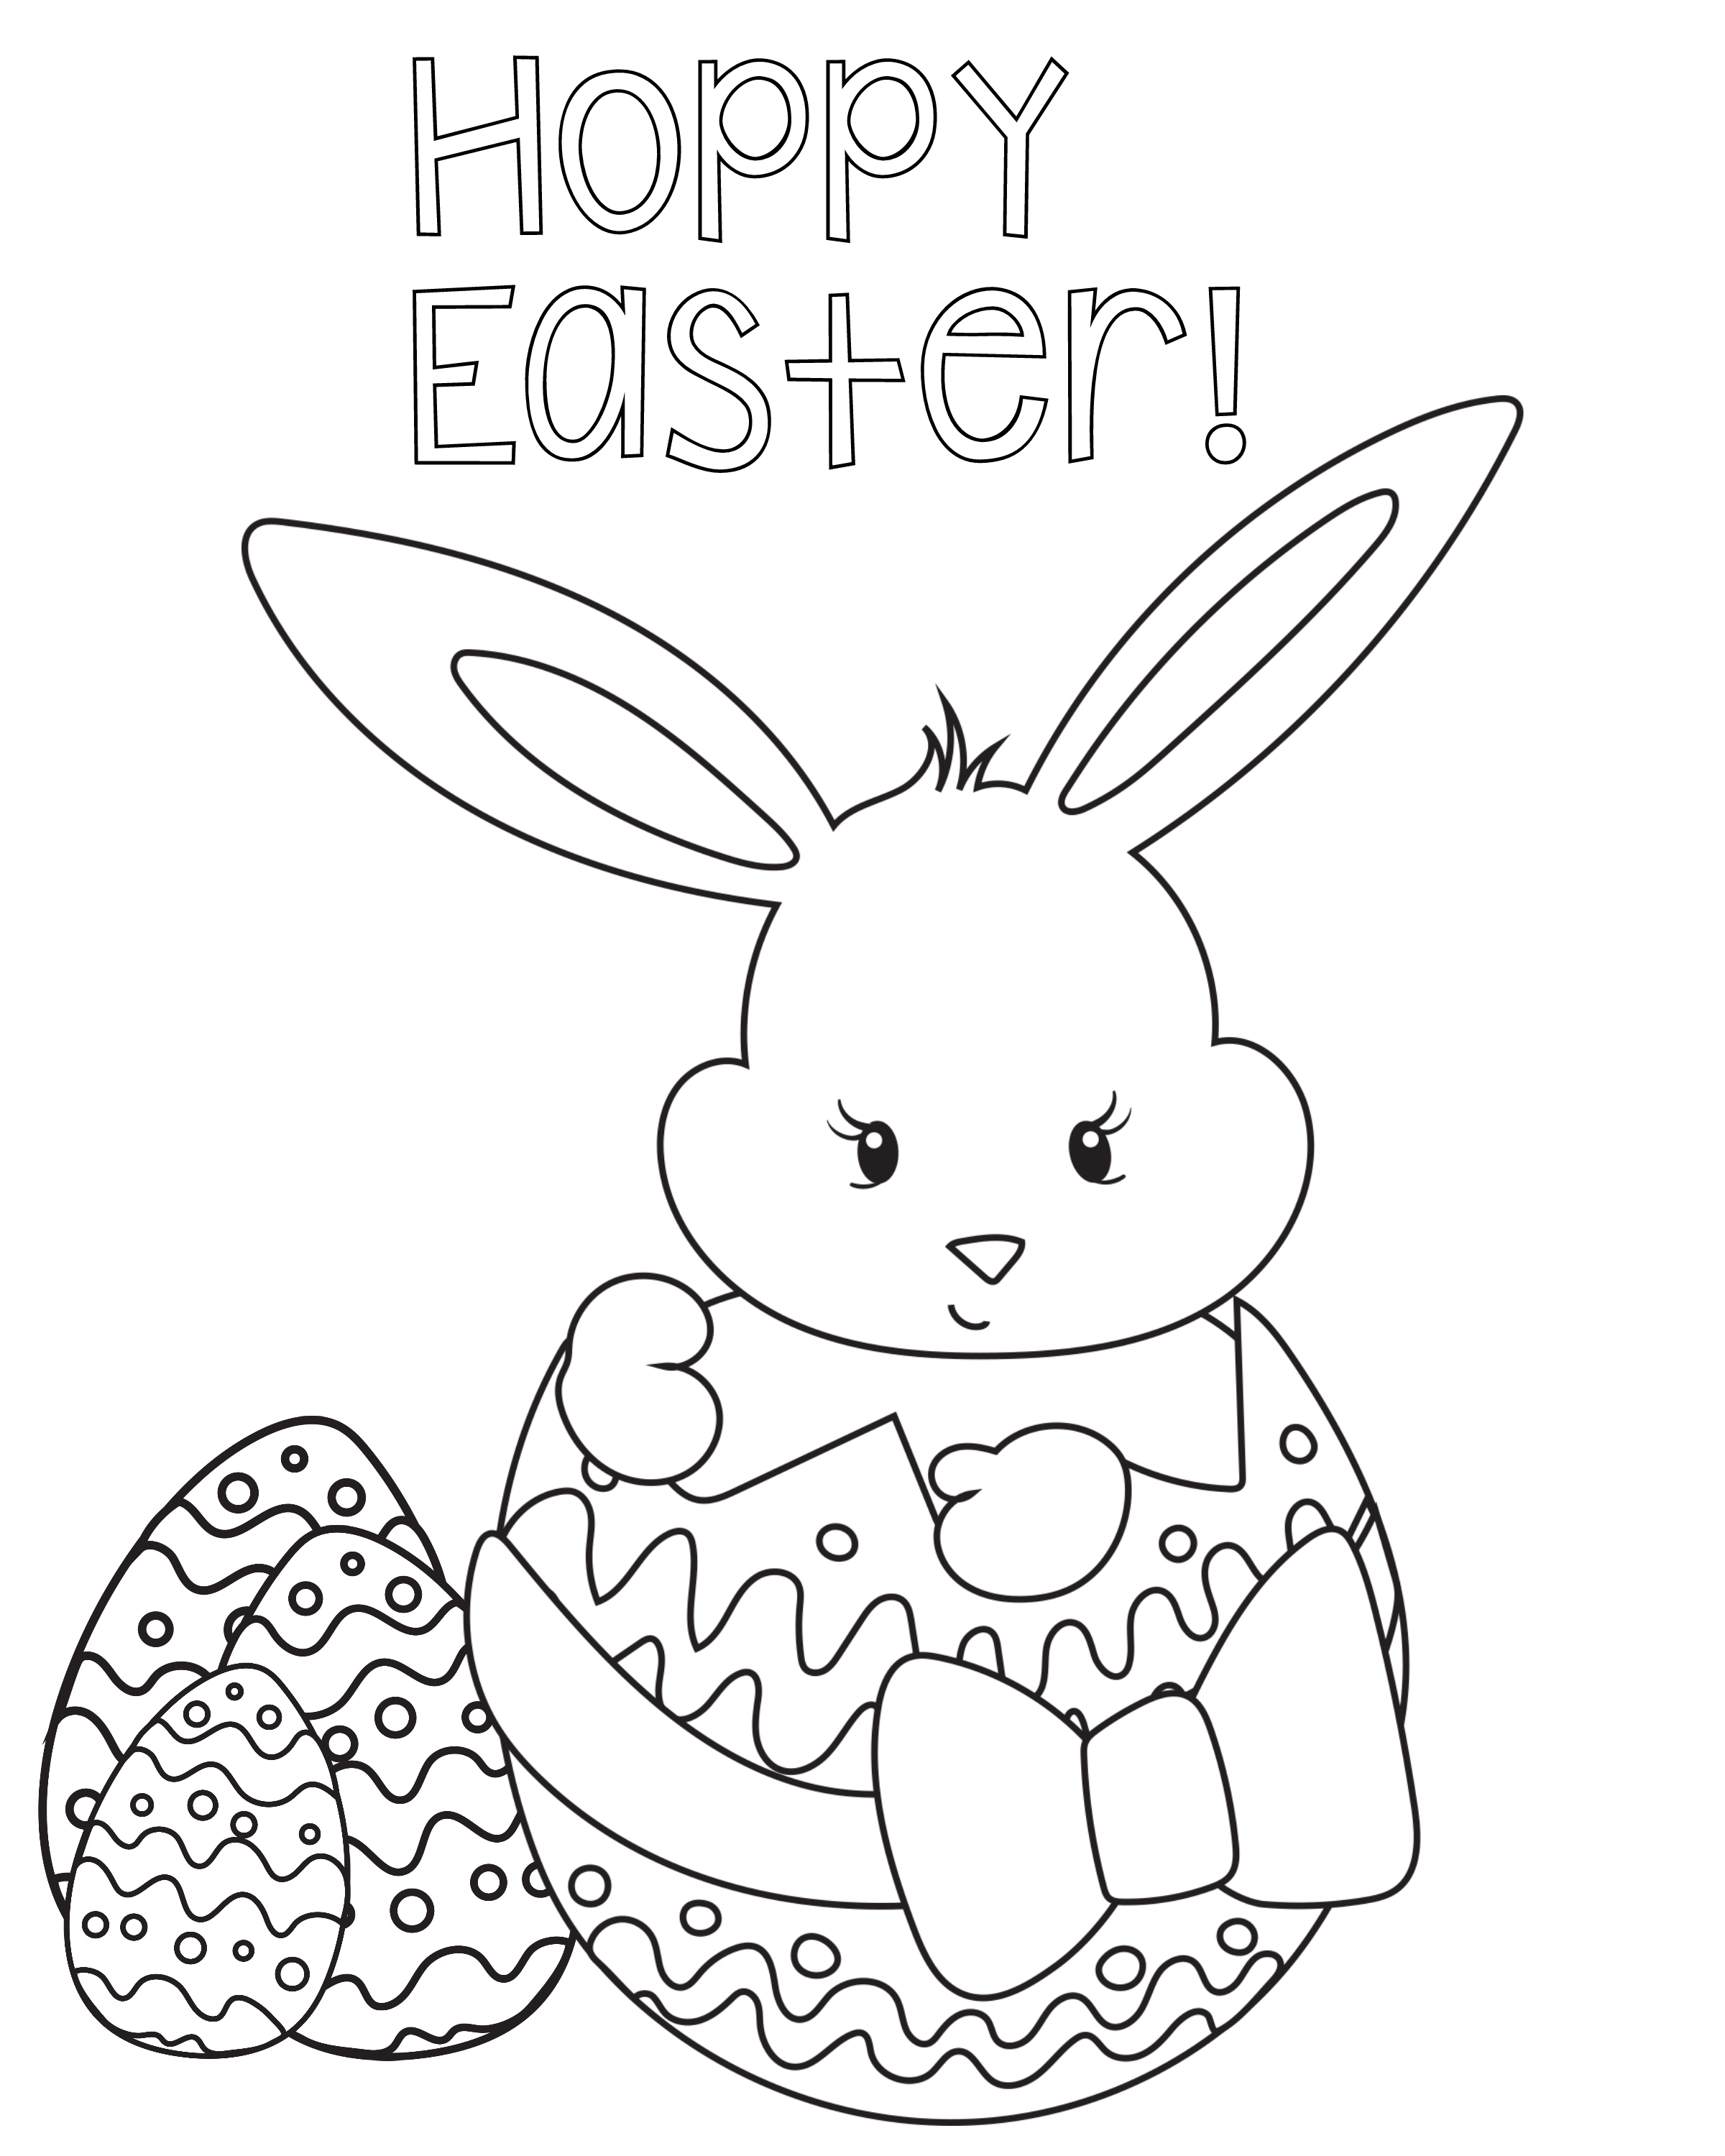 Easter Worksheets Halloween Coloring Pages Color By Number Easter - Coloring-sheets-for-boys